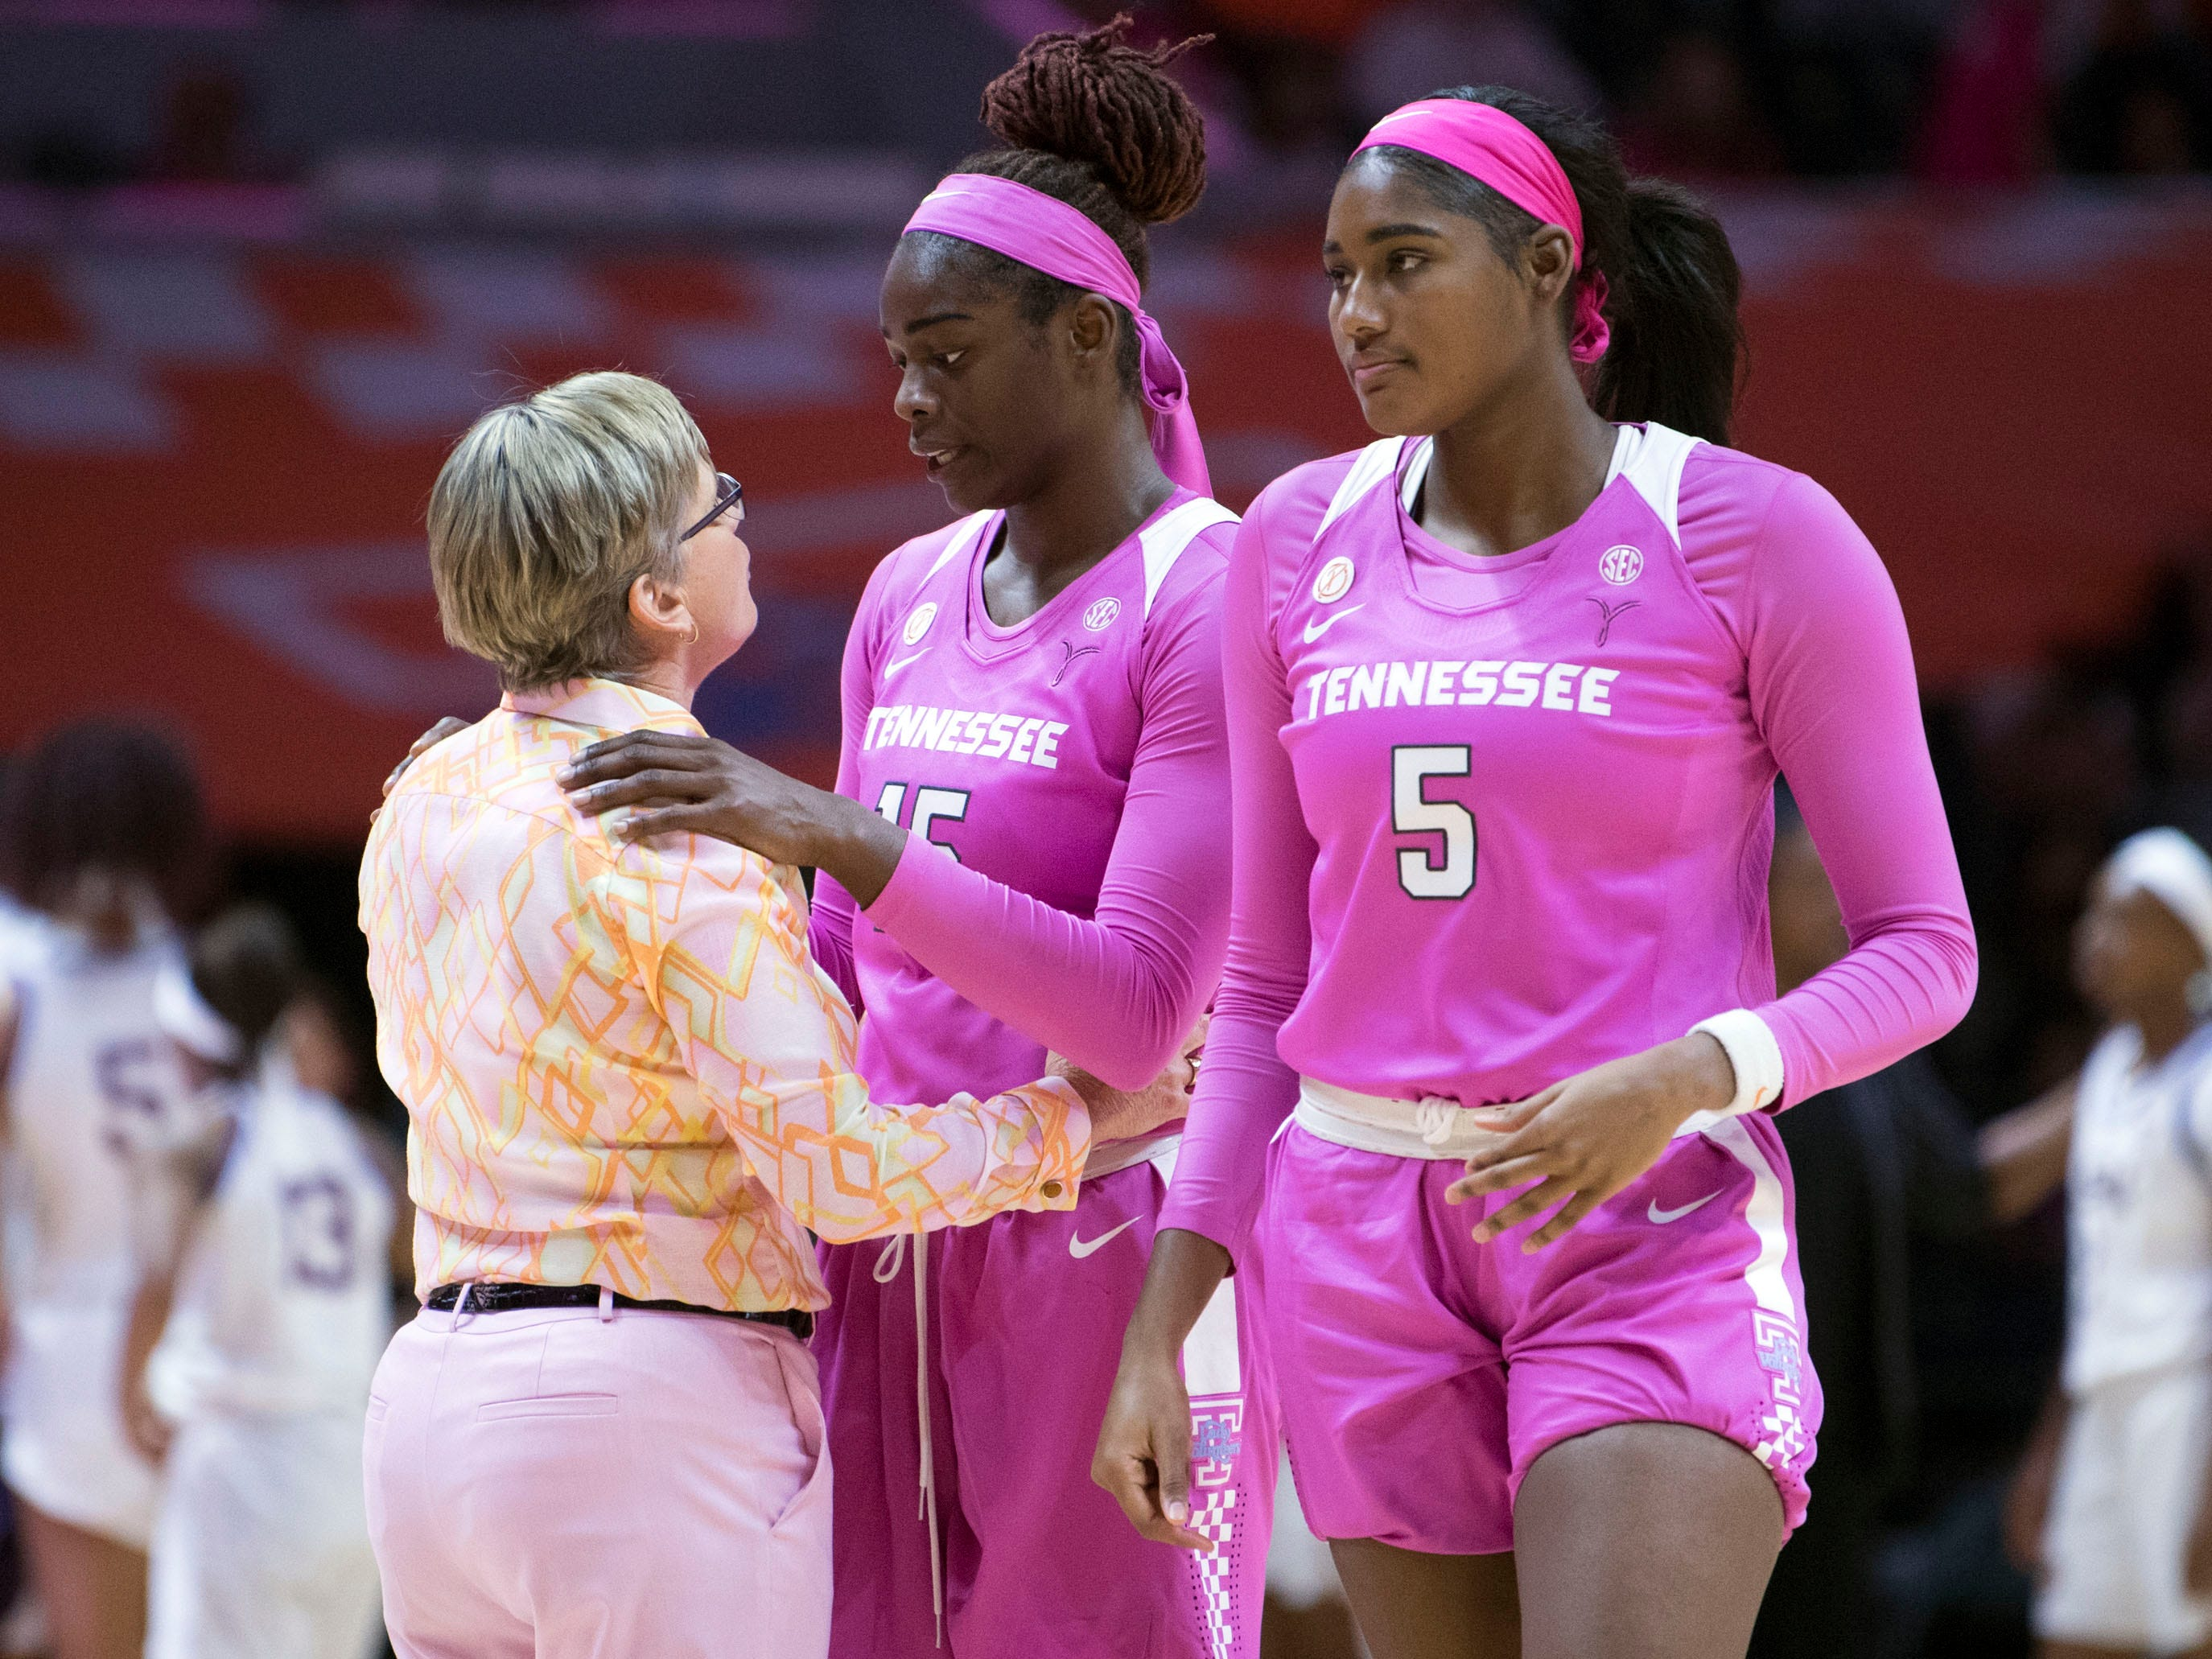 Tennessee women's basketball coach Holly Warlick talks with Cheridene Green (15) during a time out in the game against LSU on Sunday, January 27, 2019. At right is TennesseeÕs Kamera Harris (5).